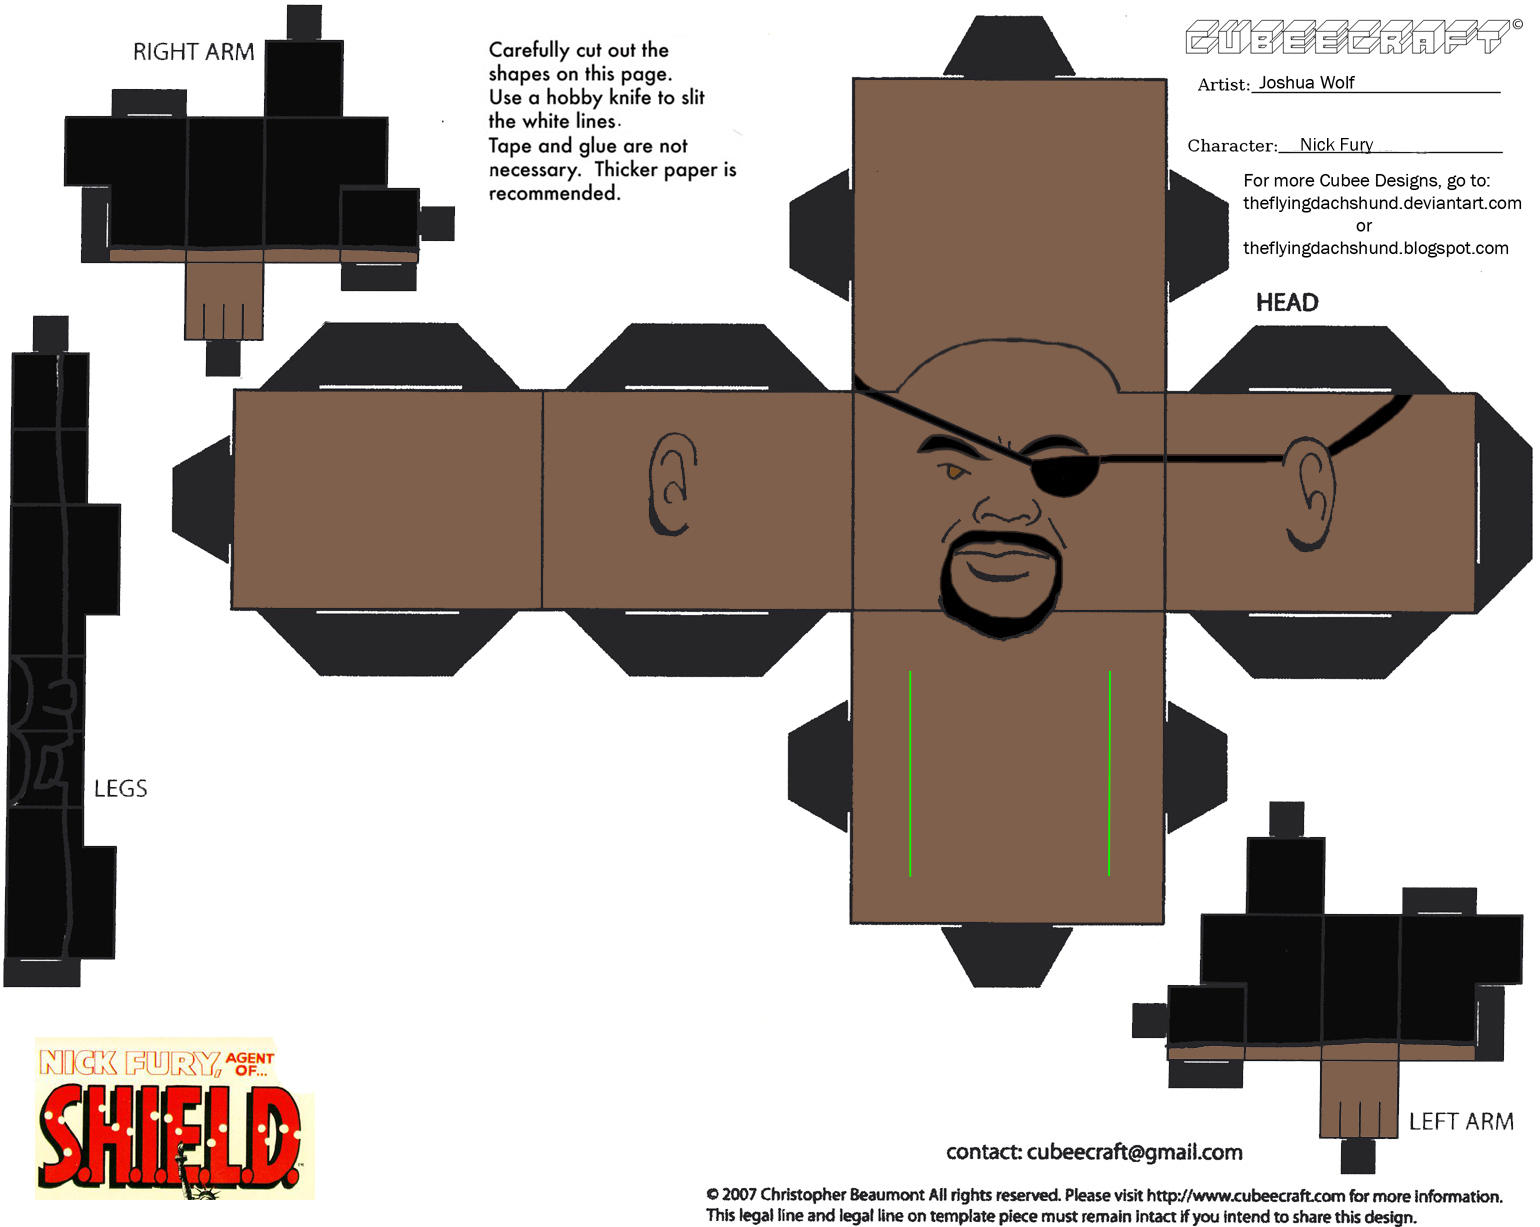 Marvel5: Nick Fury Cubee by TheFlyingDachshund